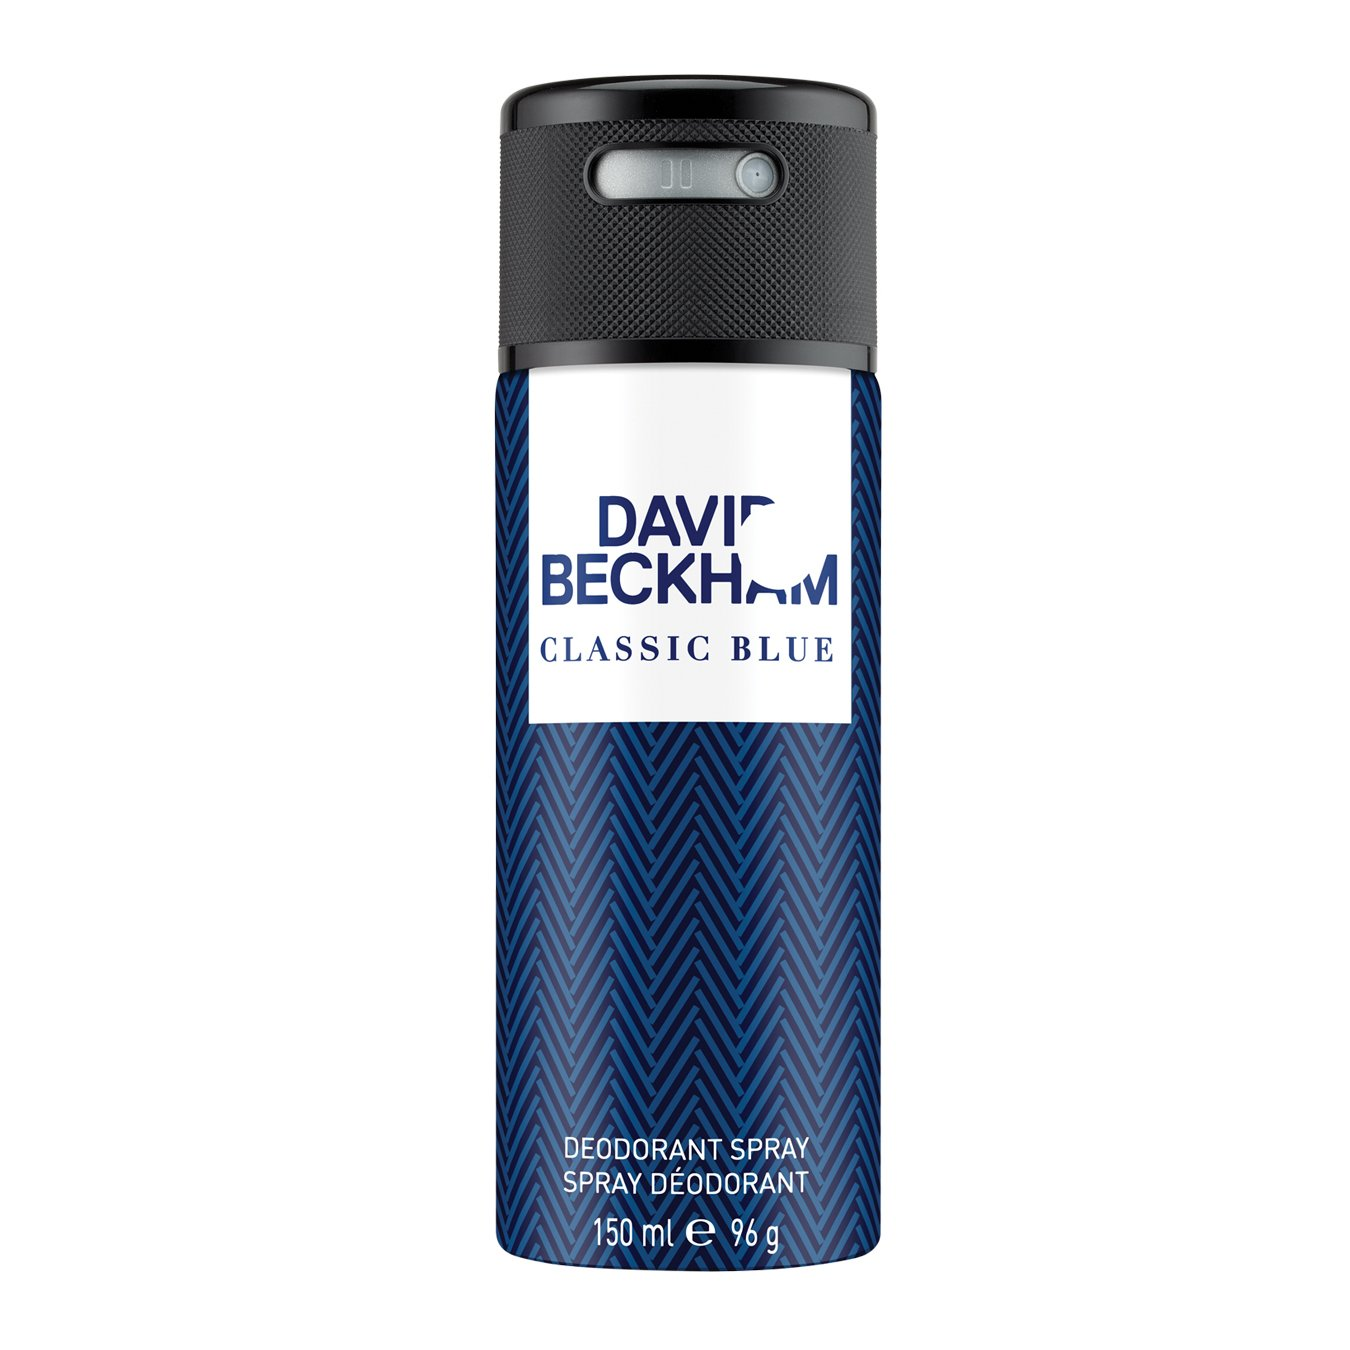 David Beckham Classic Blue Body Spray 150 ml by Beckham Skin Care Products